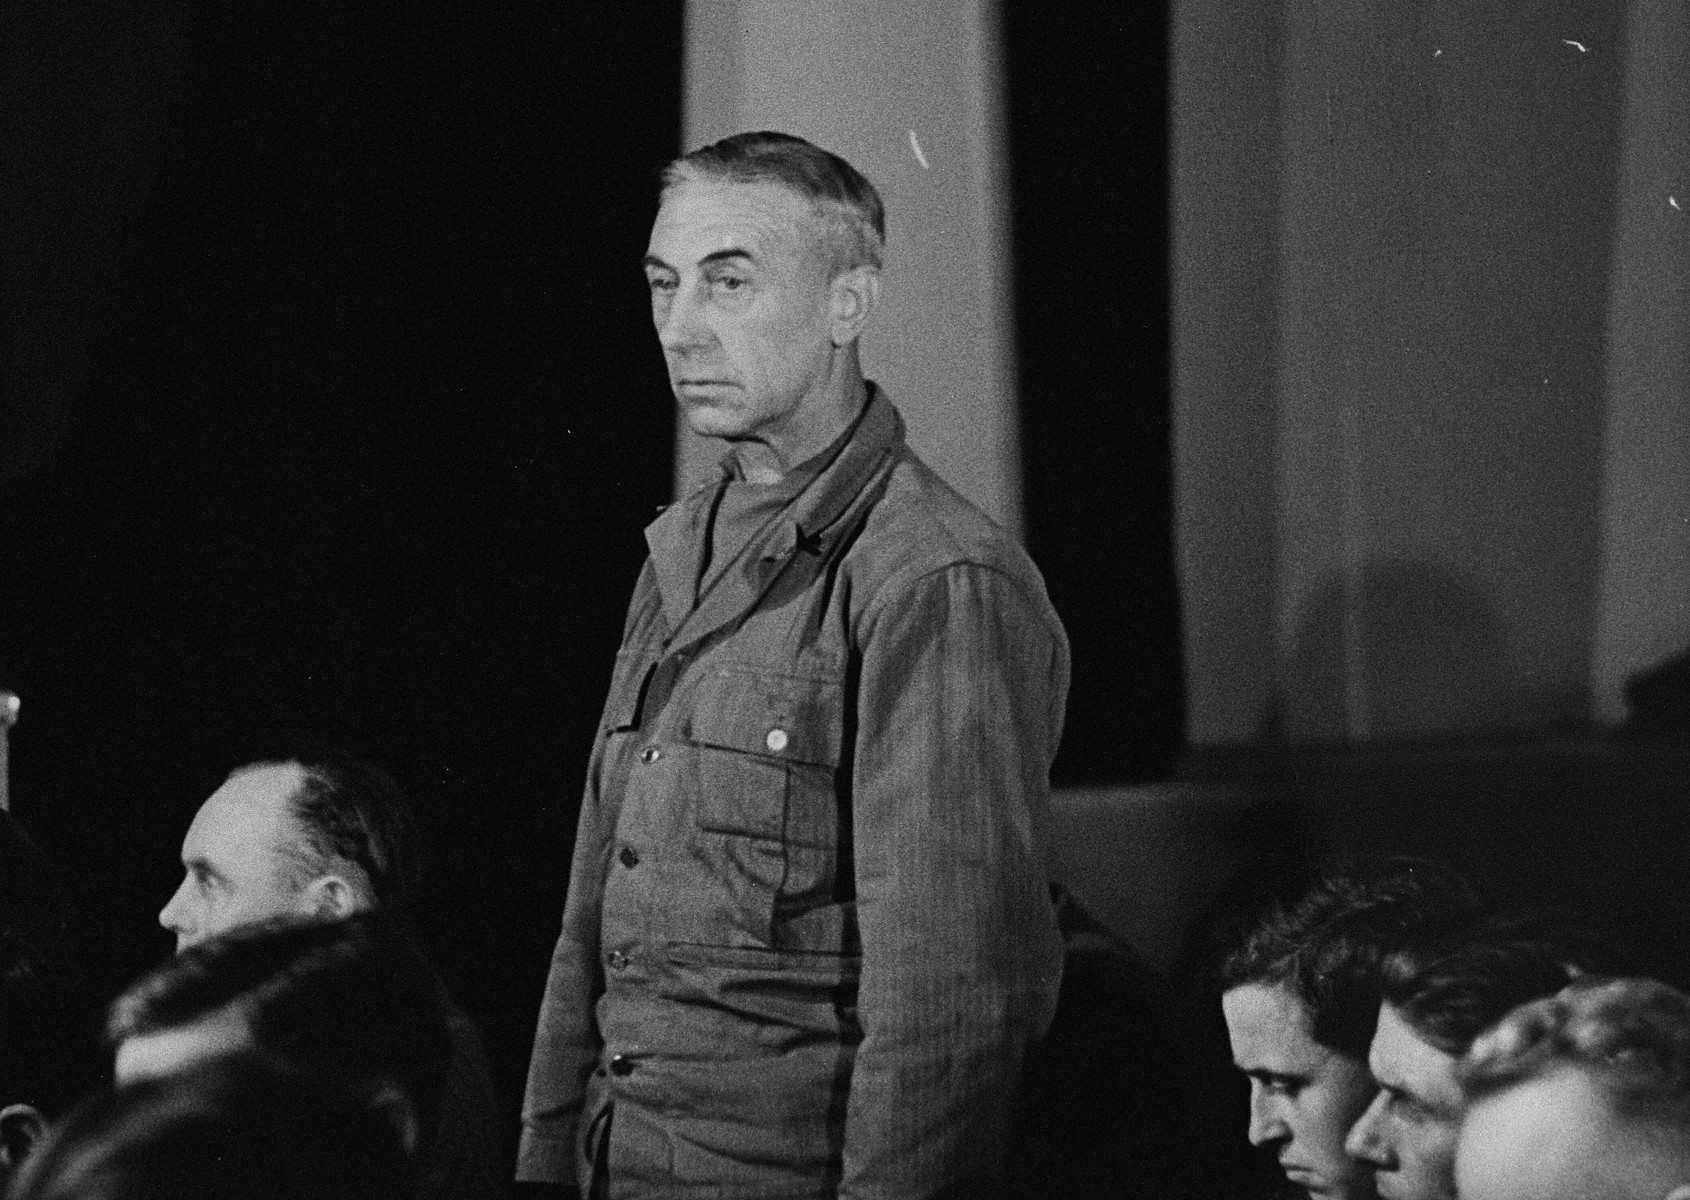 A defendant at the trial of 61 former camp personnel and prisoners from Mauthausen, stands in his place in the defendants' dock.    The defendant is probably Julius Ludolf, a former Lieutenant in the SS and the commandant of Melk.